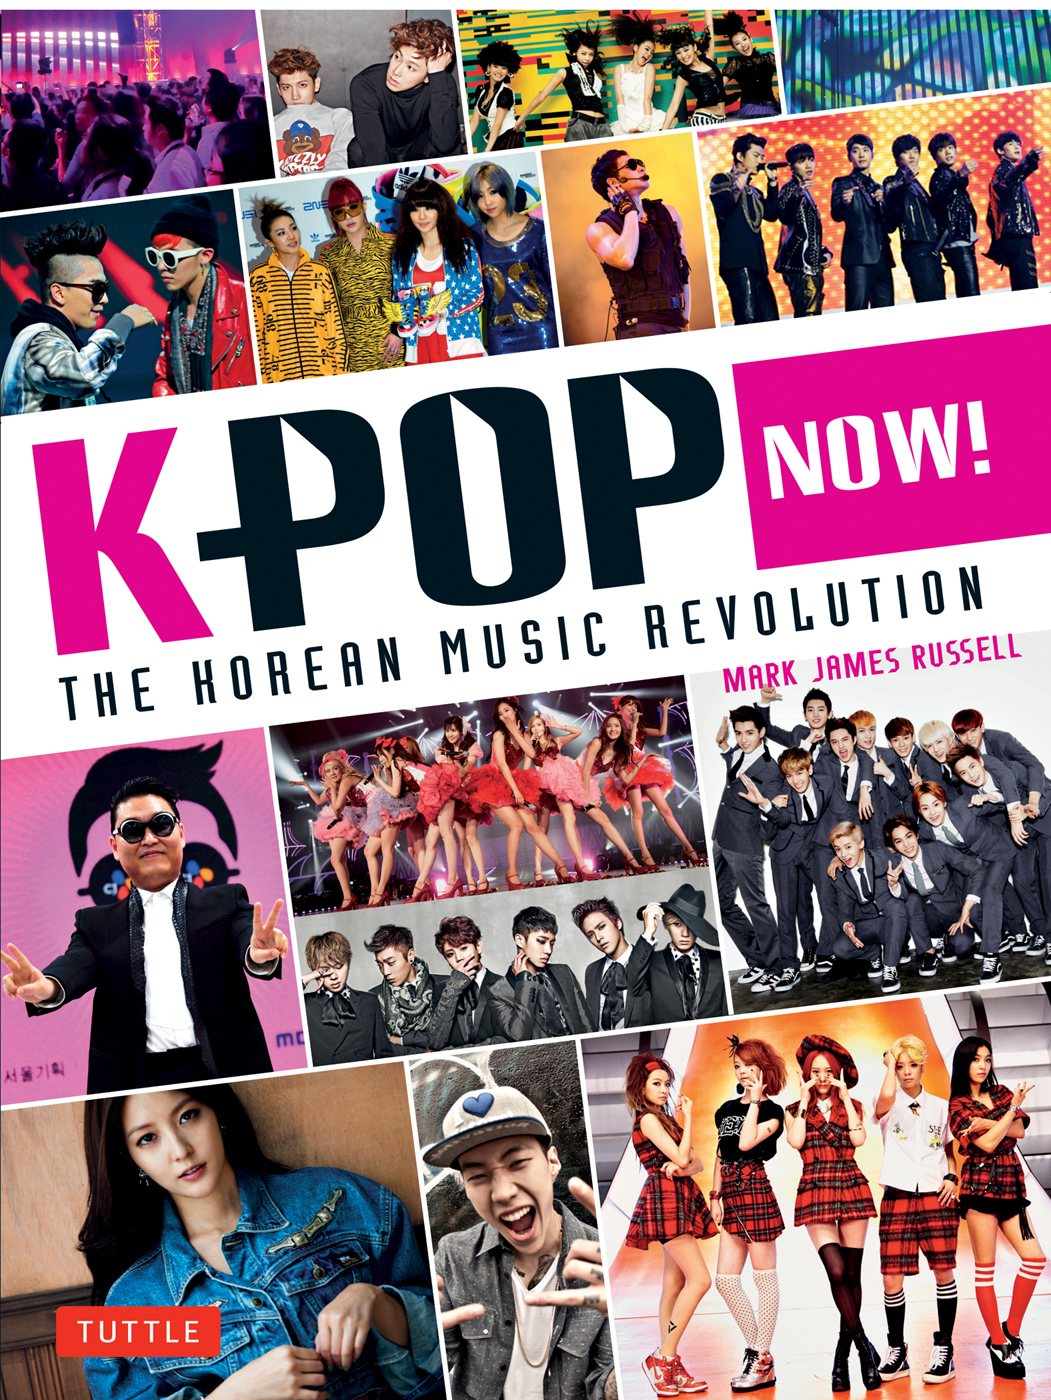 K-pop-now!-9784805313008_hr